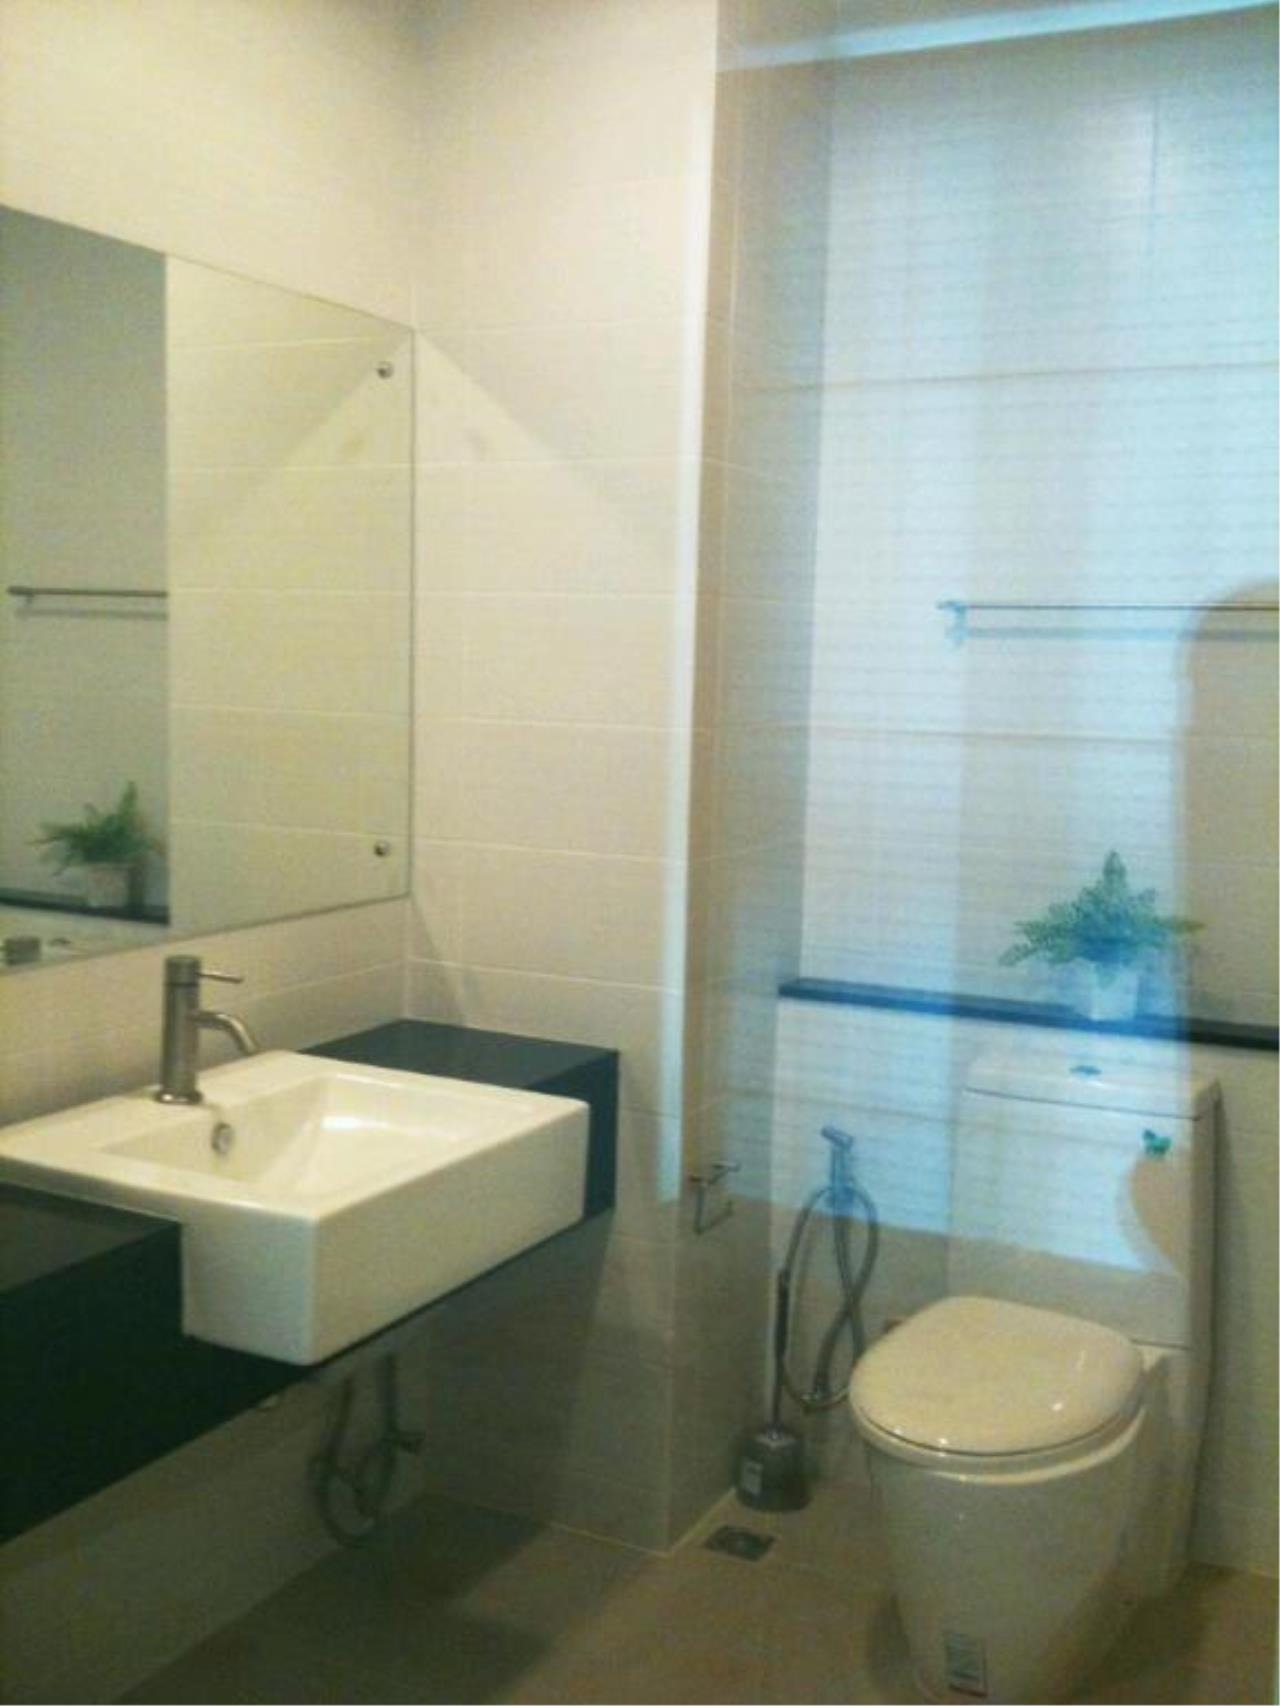 Piri Property Agency's one bedroom  For Rent IDEO Ratchada-Huaykwang 3